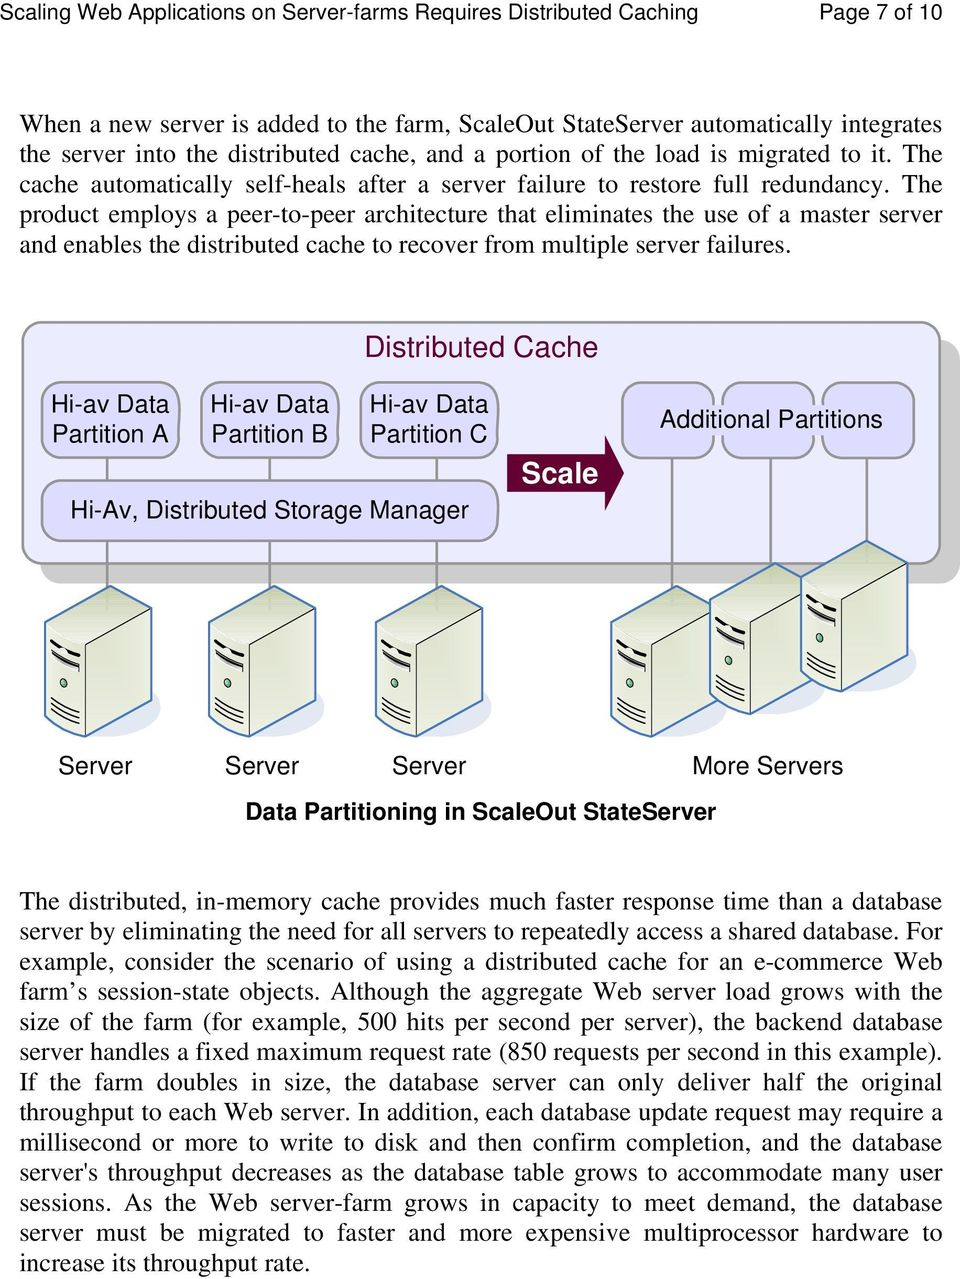 The product employs a peer-to-peer architecture that eliminates the use of a master server and enables the distributed cache to recover from multiple server failures.